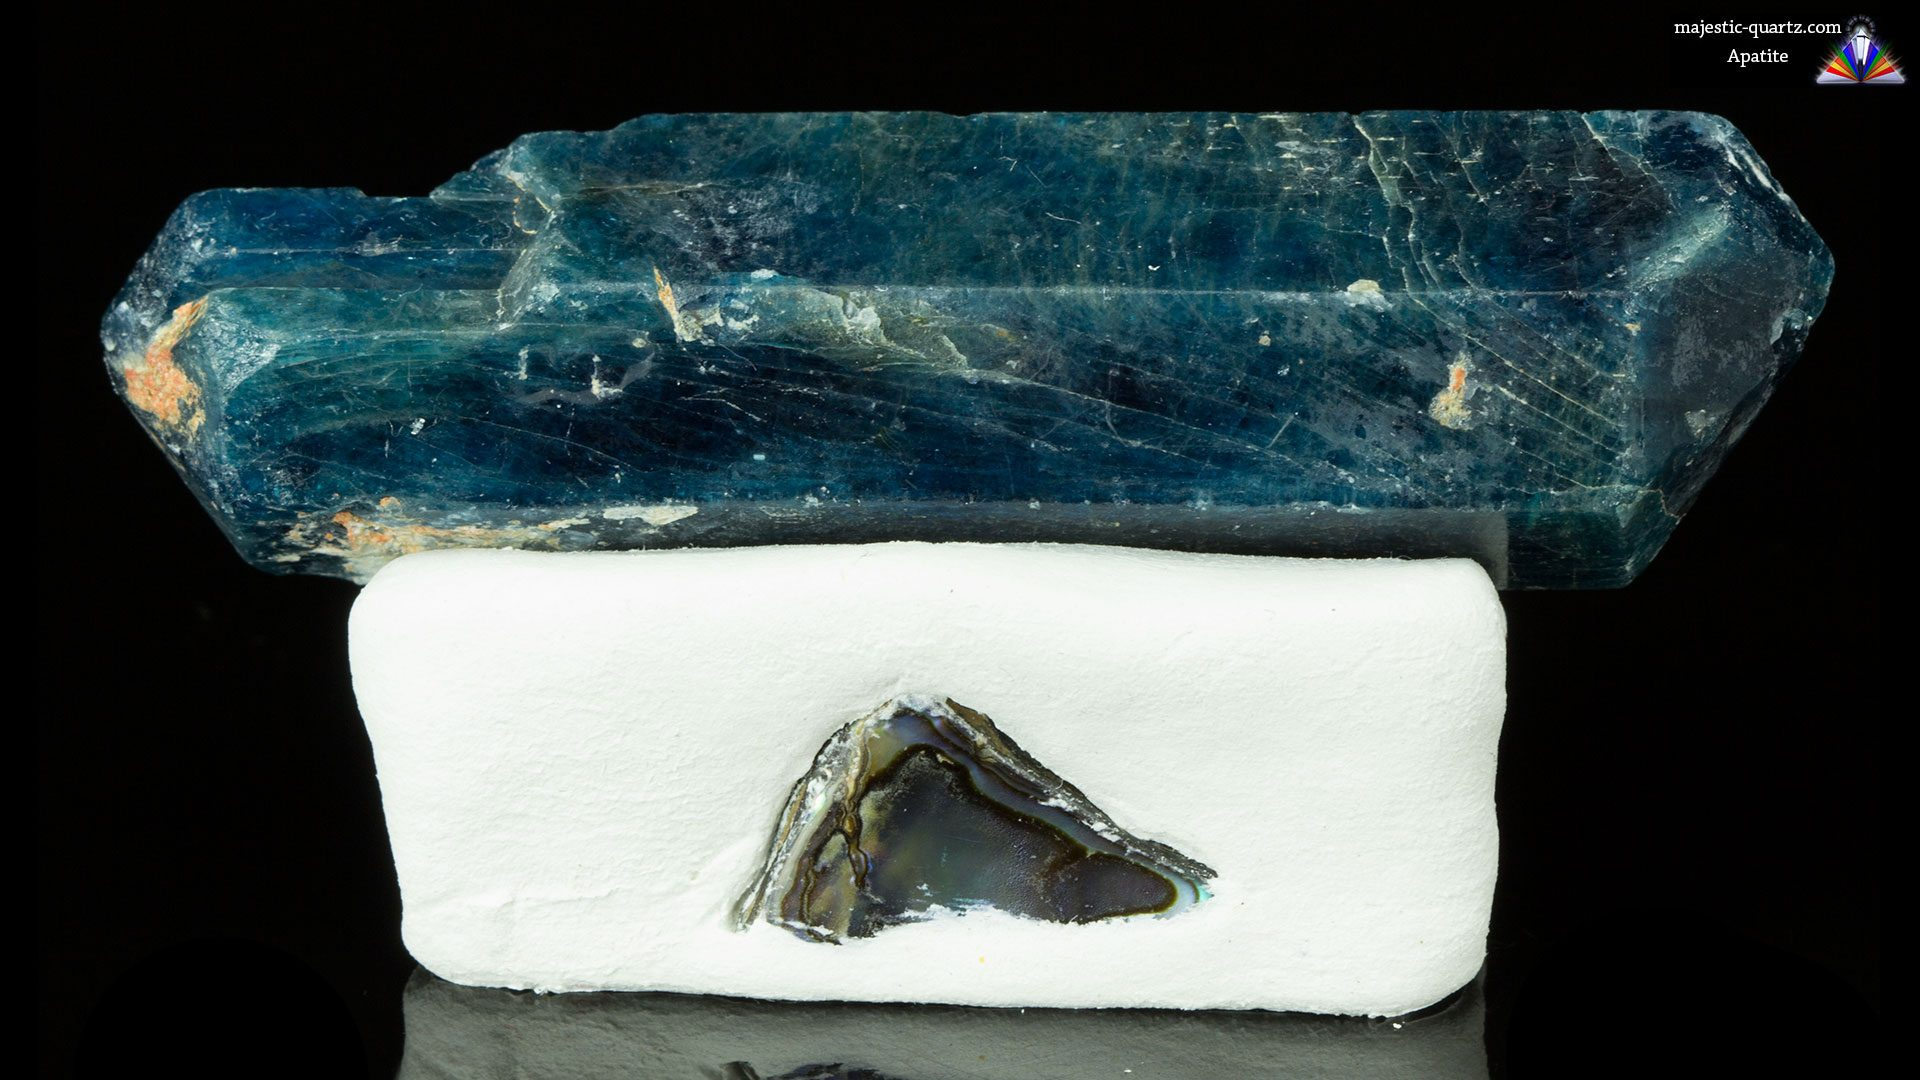 Double Terminated Apatite Specimen - Photograph by Anthony Bradford